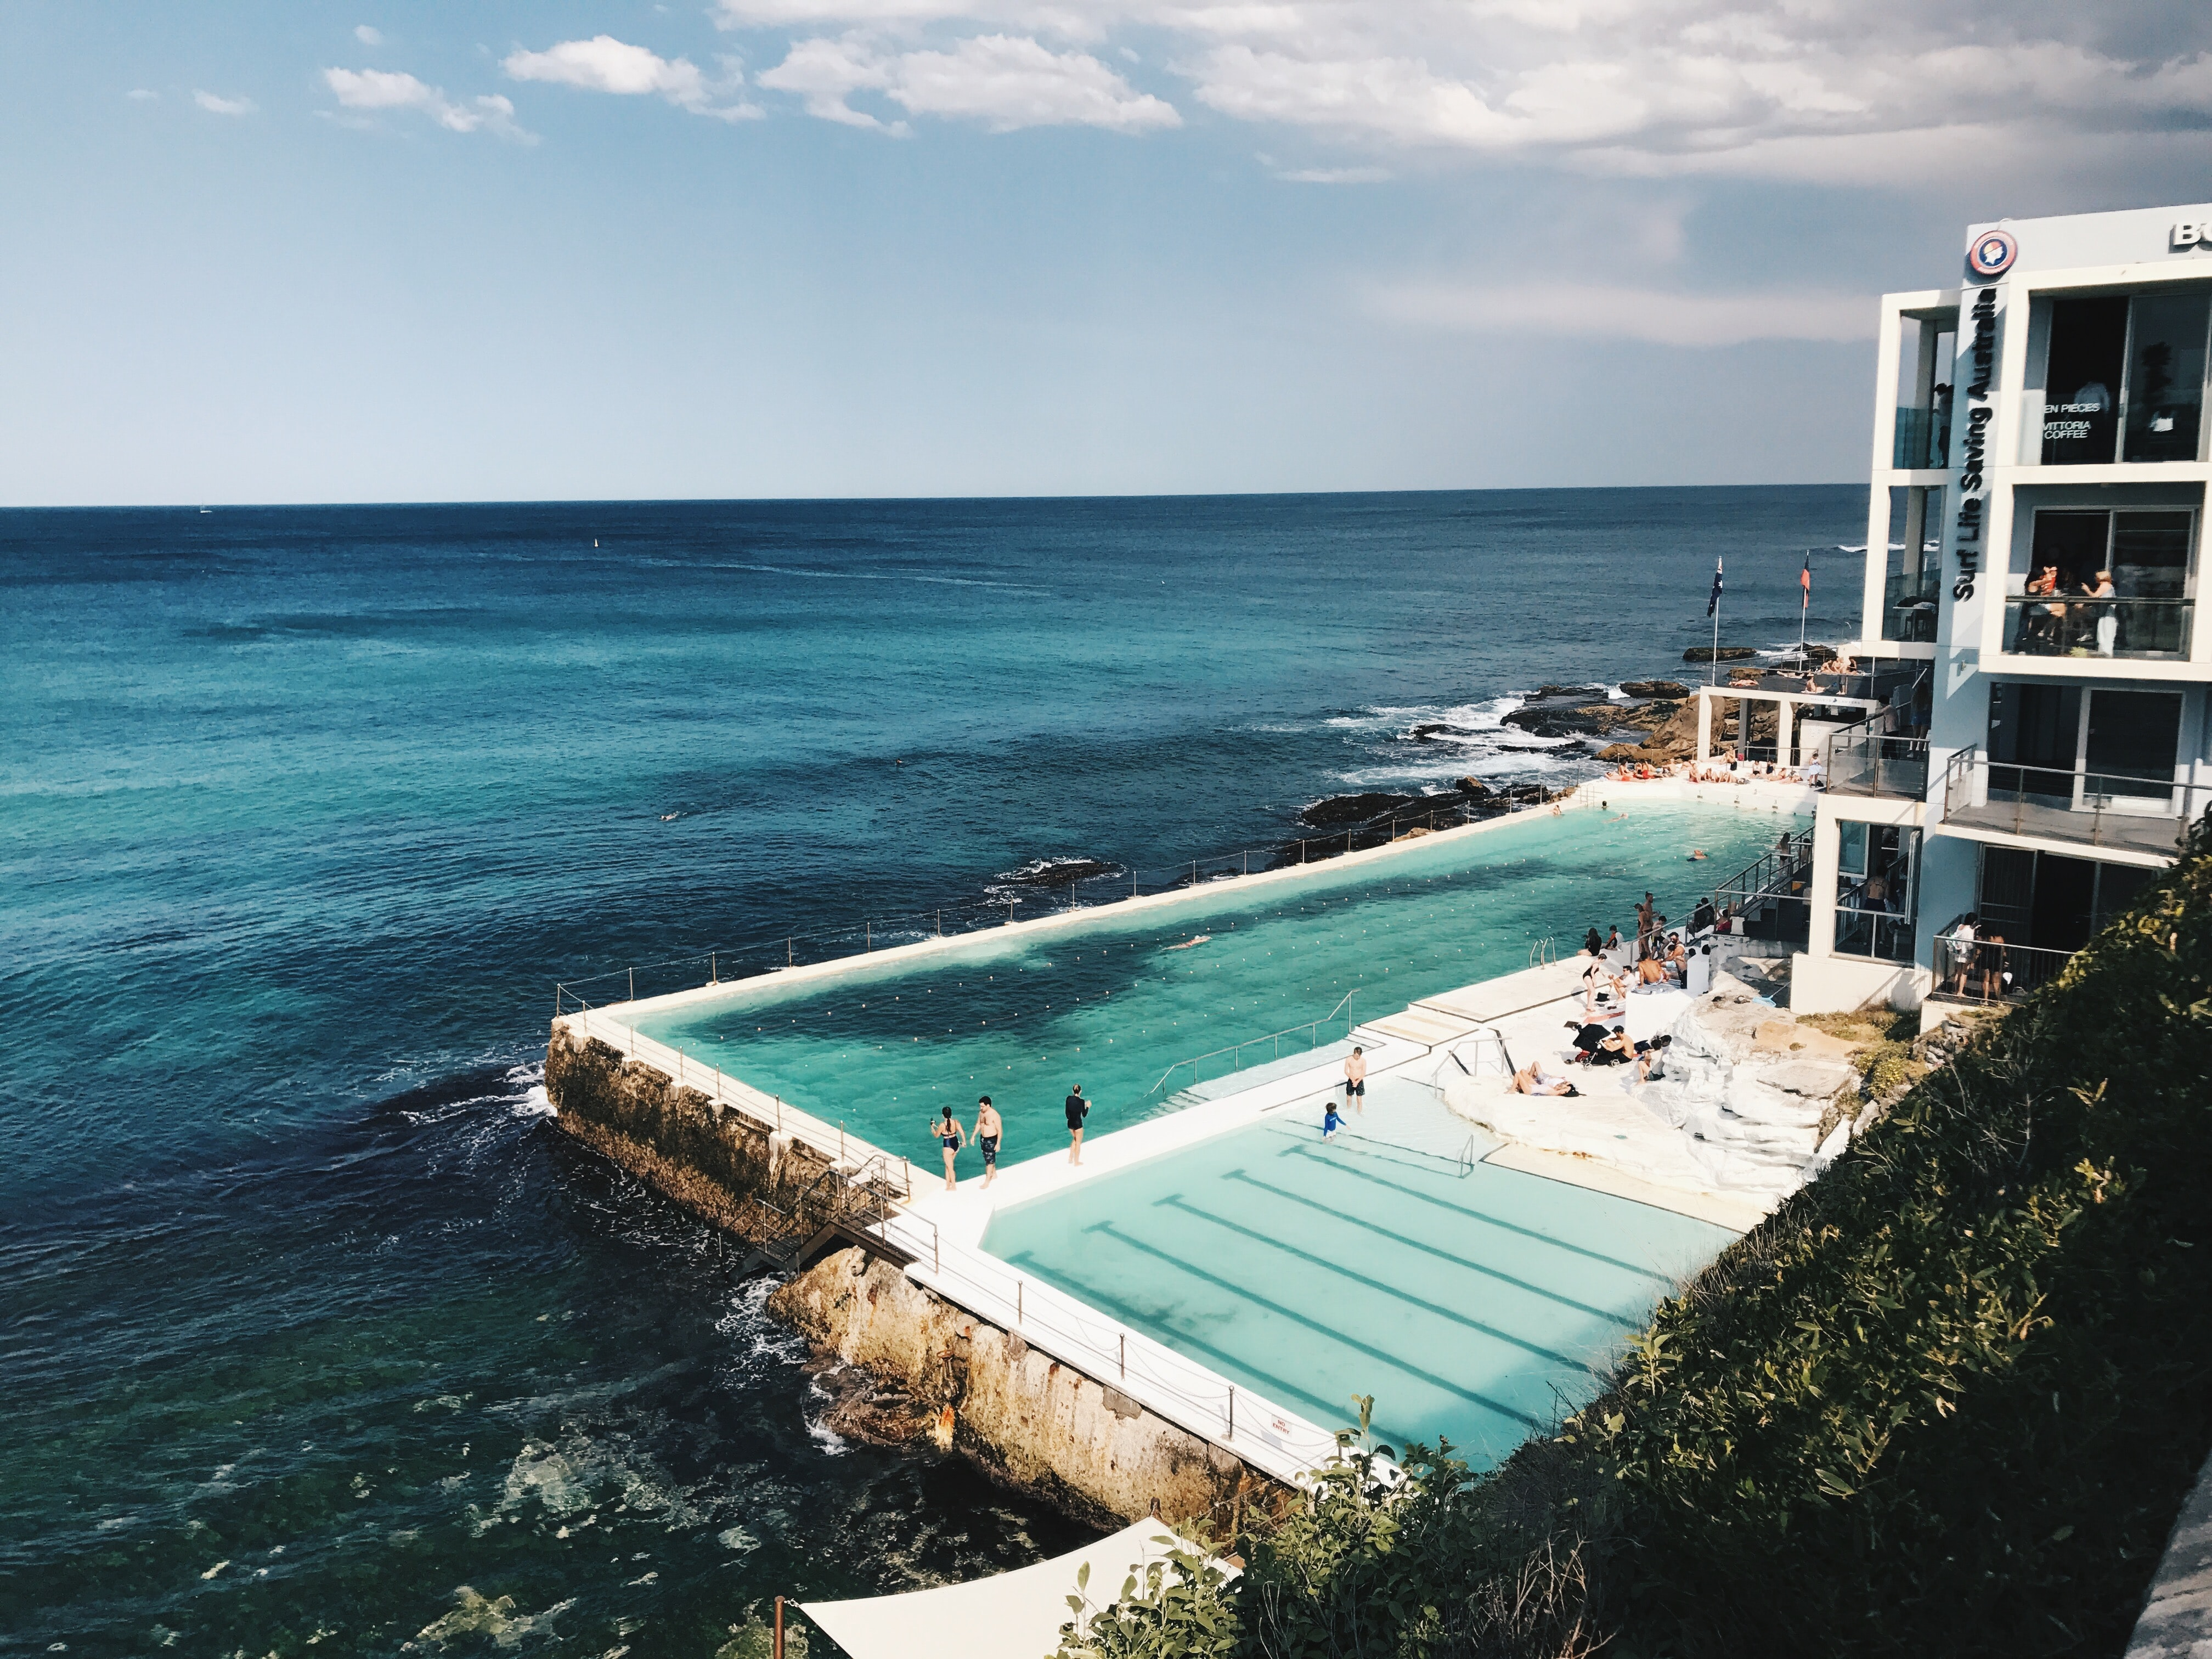 large swimming pool near ocean in landscape photography